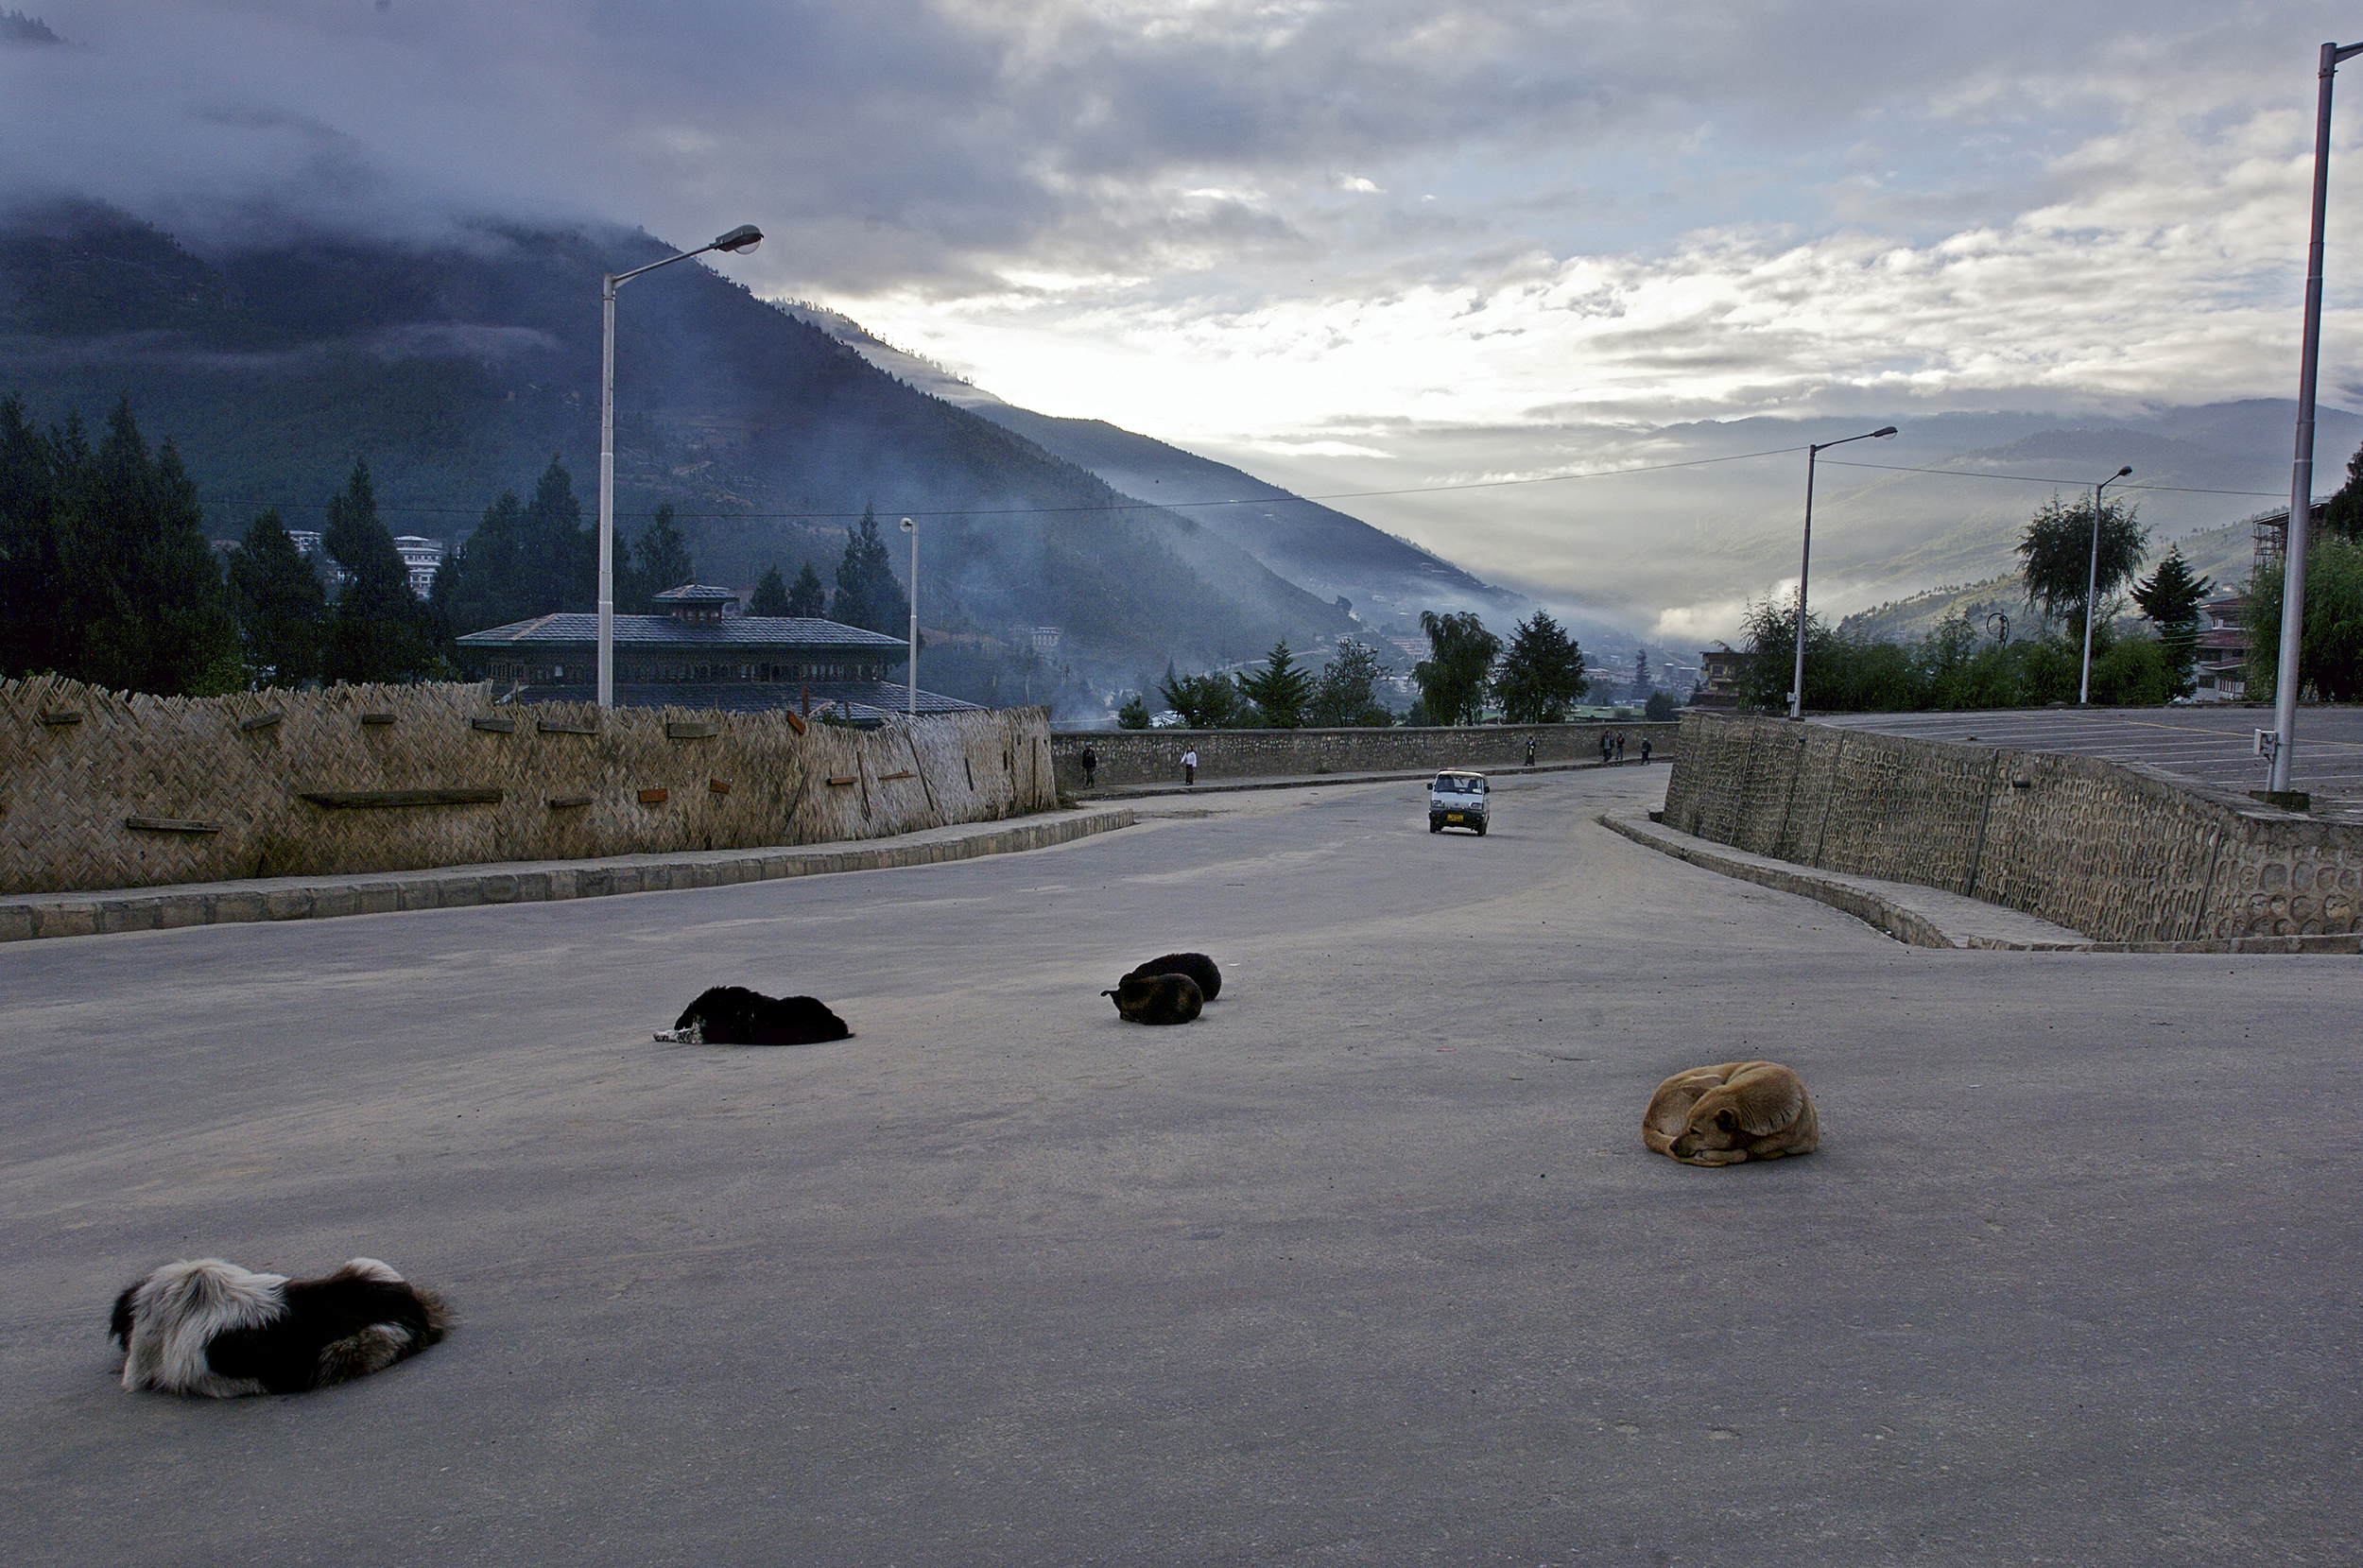 Sleeping stray dogs    in the early morning, 6:30 a.m. Finally the dogs lay down to rest after having been up barking all night. 01.10.07,Thimphu